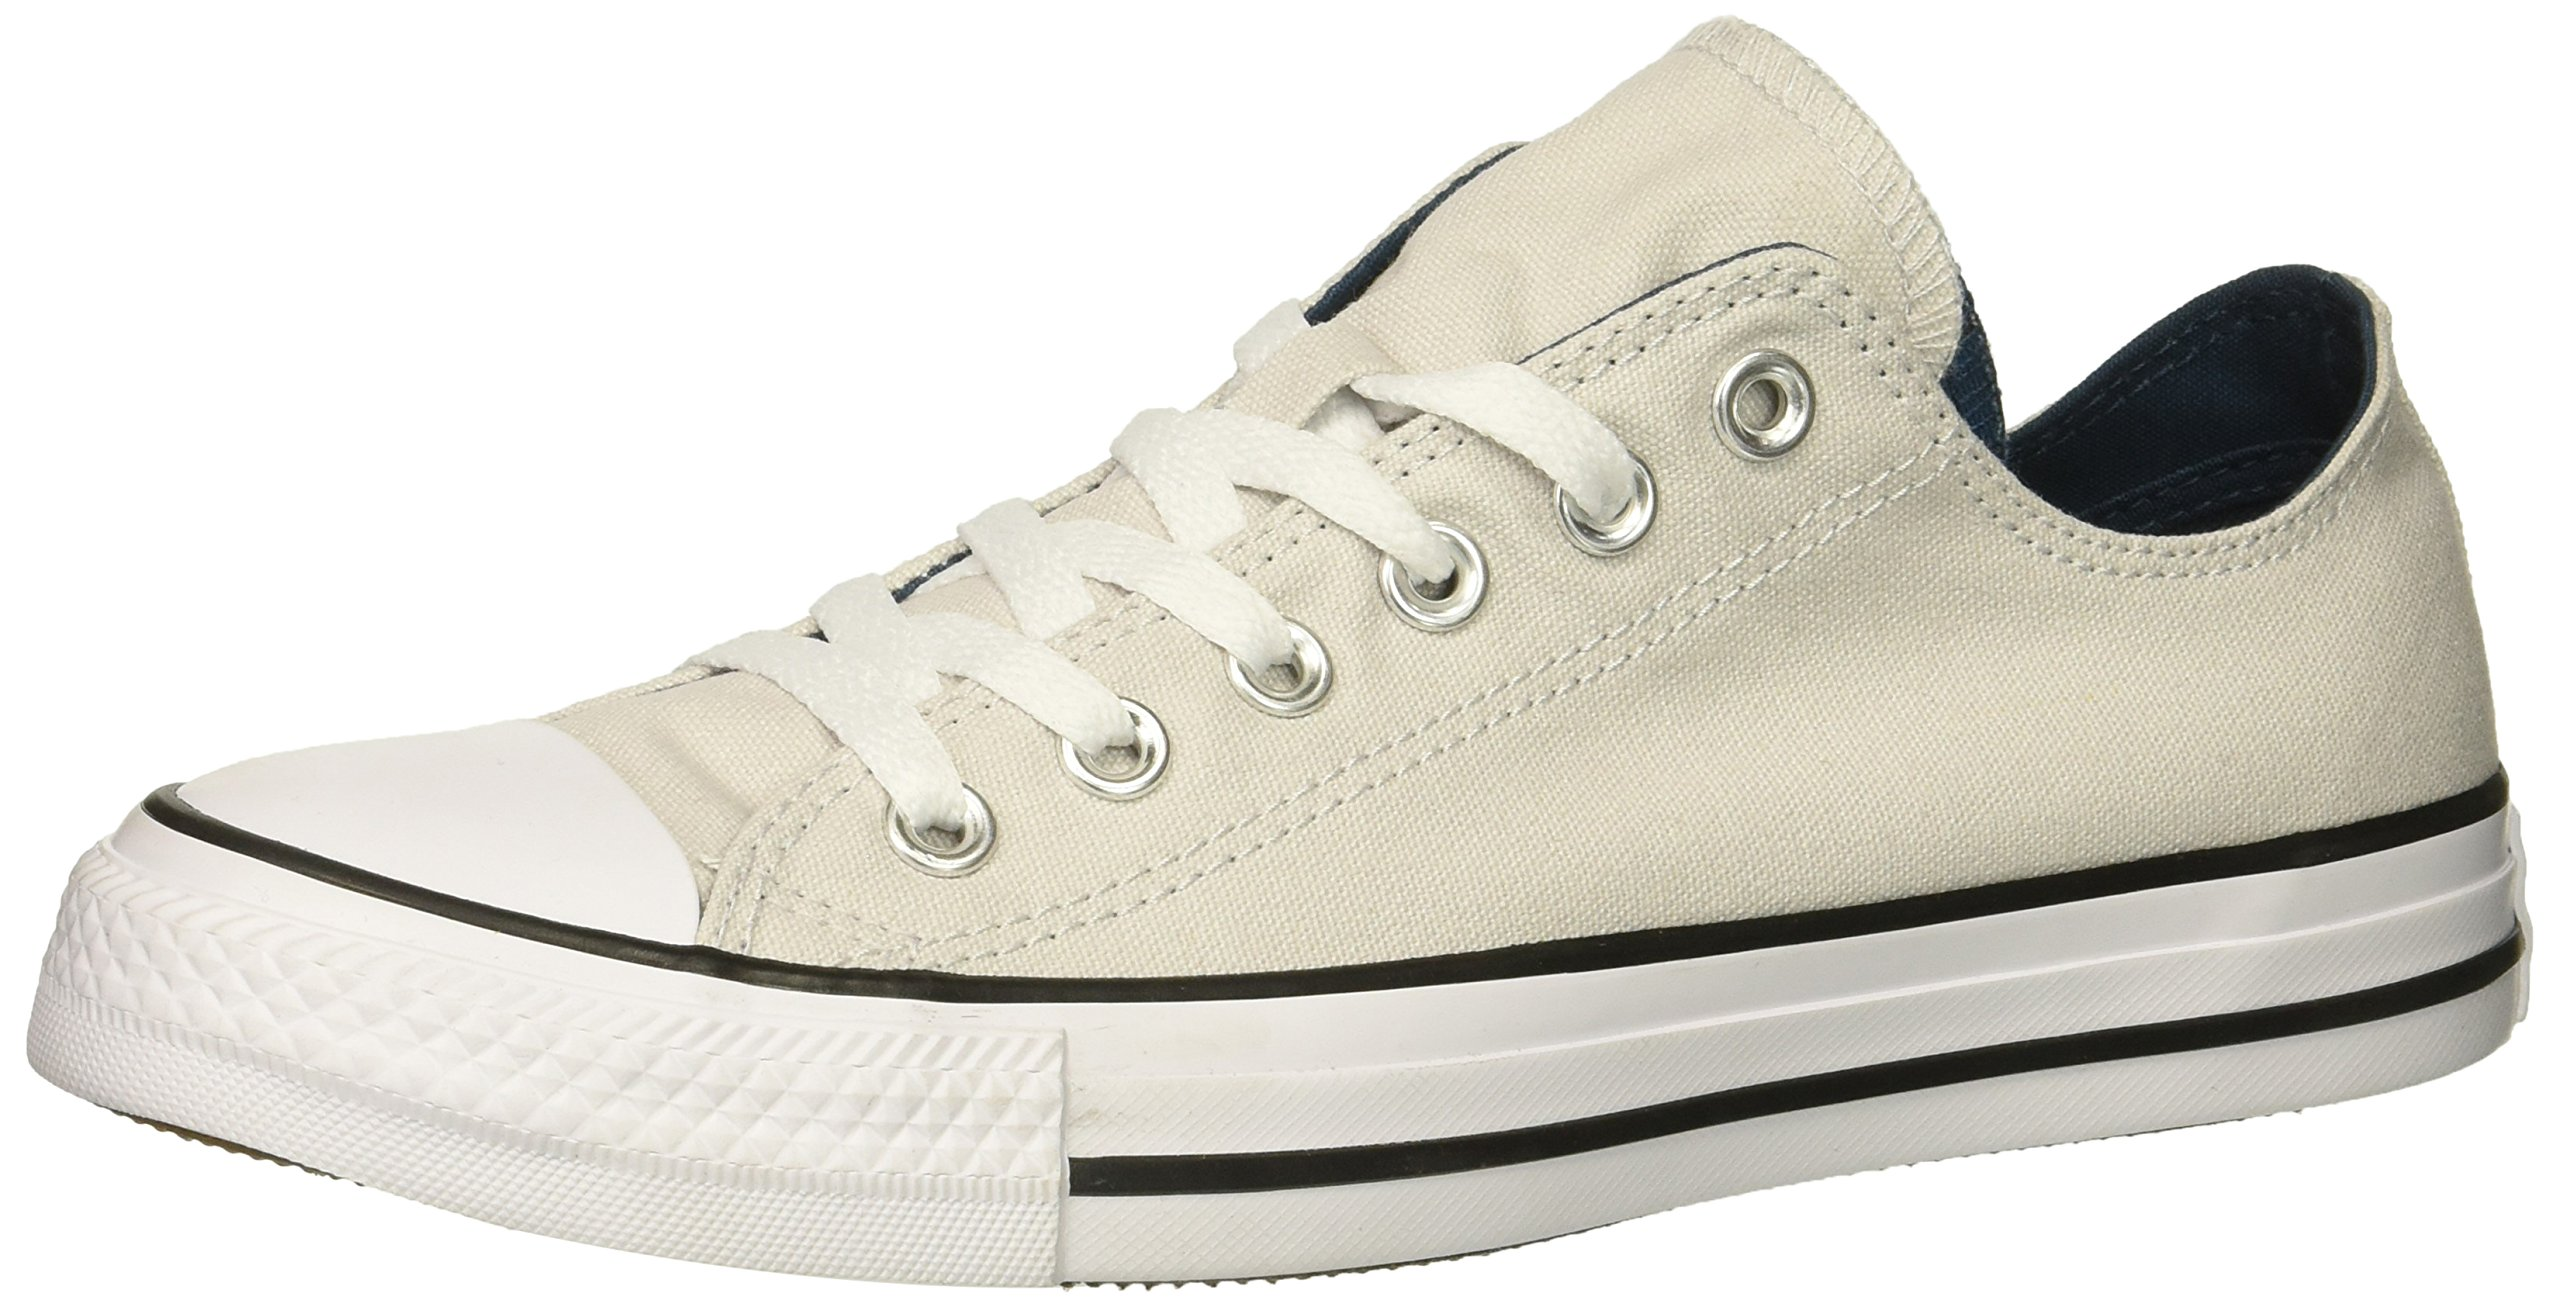 Converse Women's Chuck Taylor All Star Double Tongue Low Top Sneaker, Mouse/White/Black, 8 M US